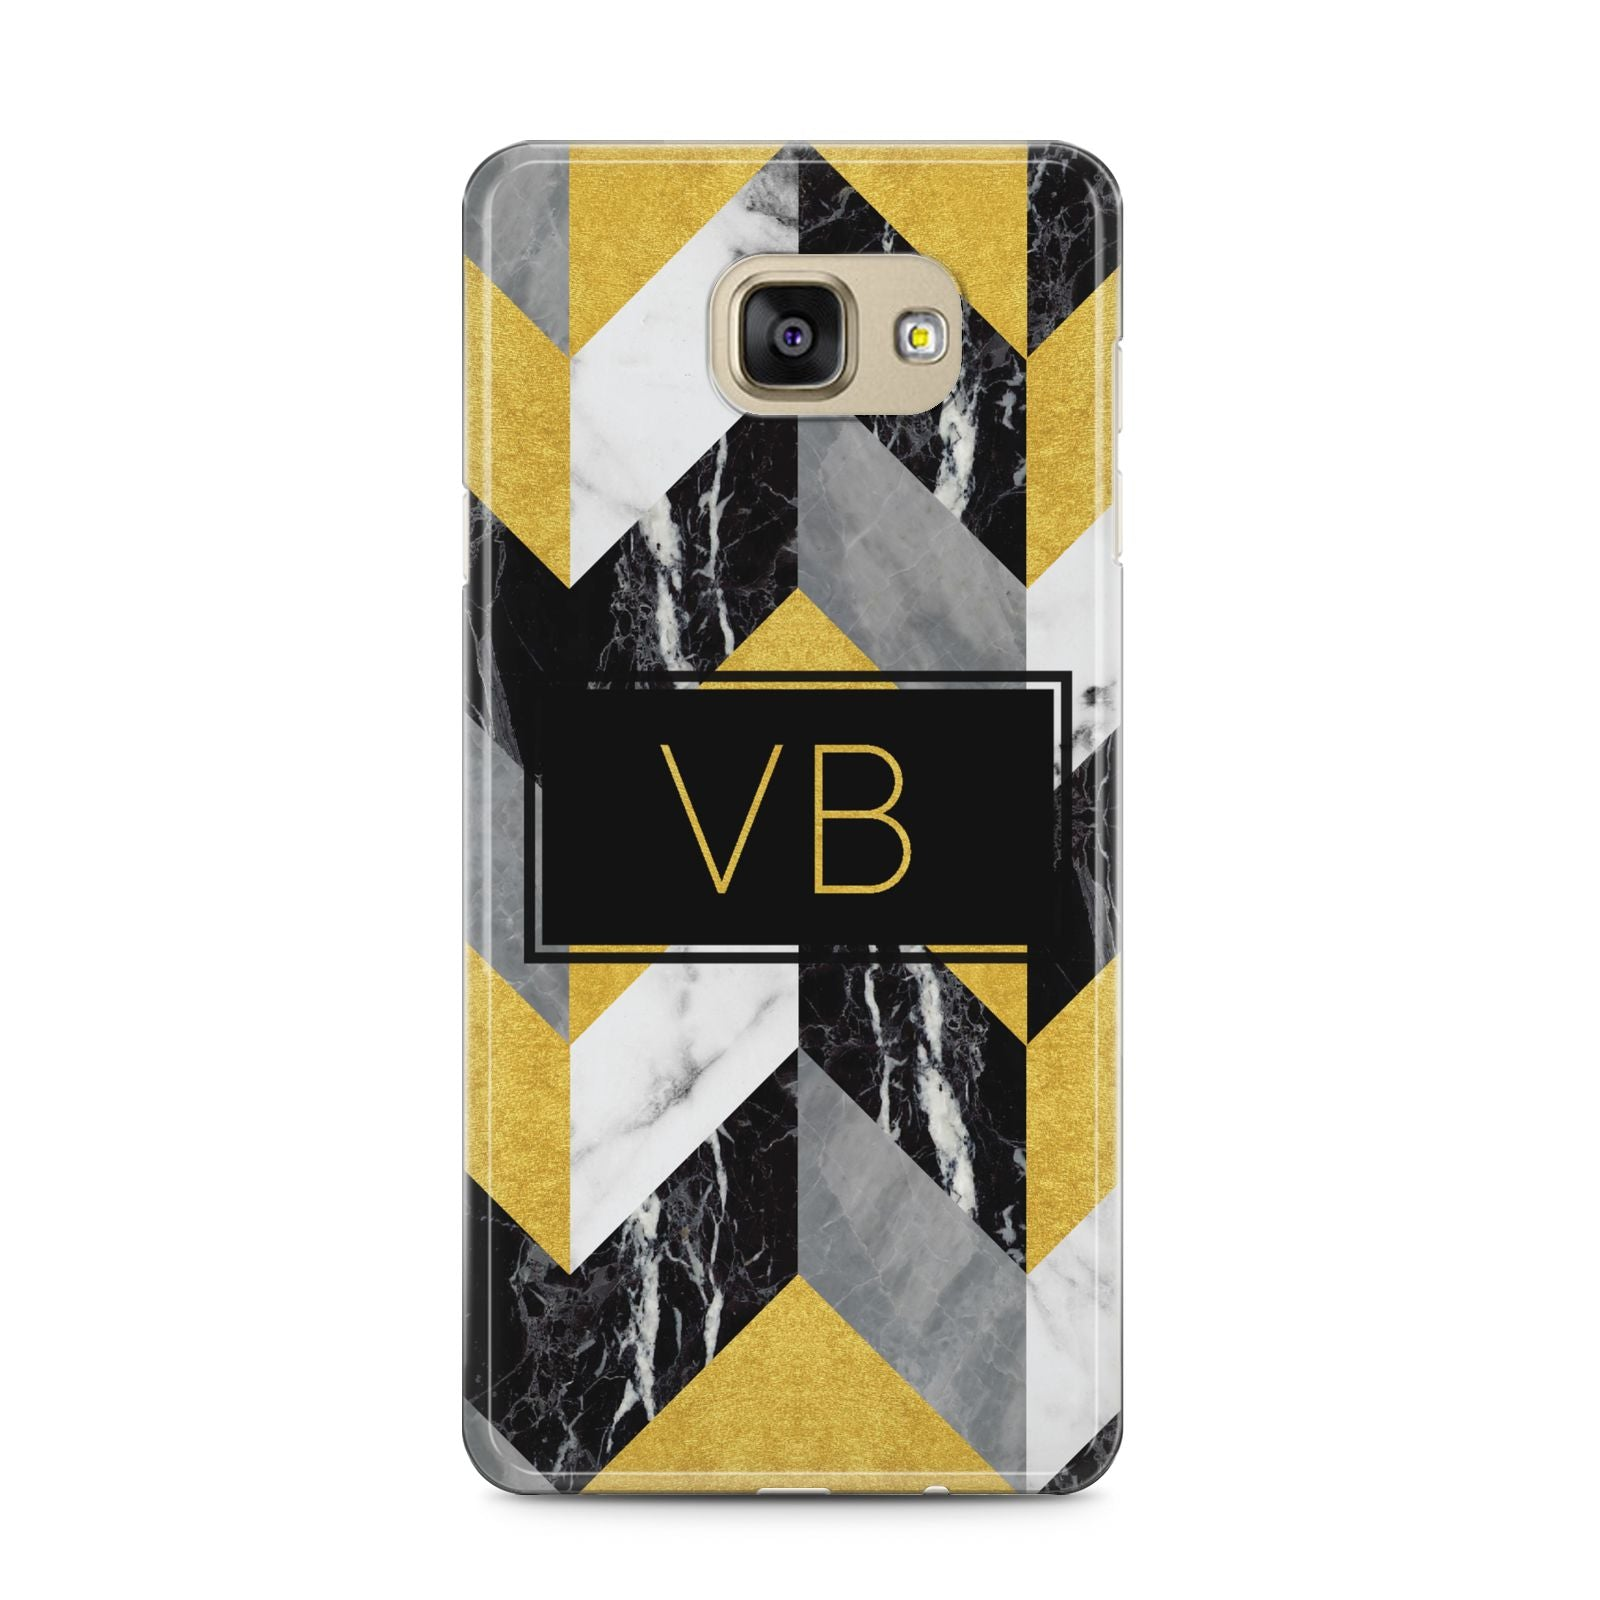 Personalised Marble Effect Initials Samsung Galaxy A5 2016 Case on gold phone